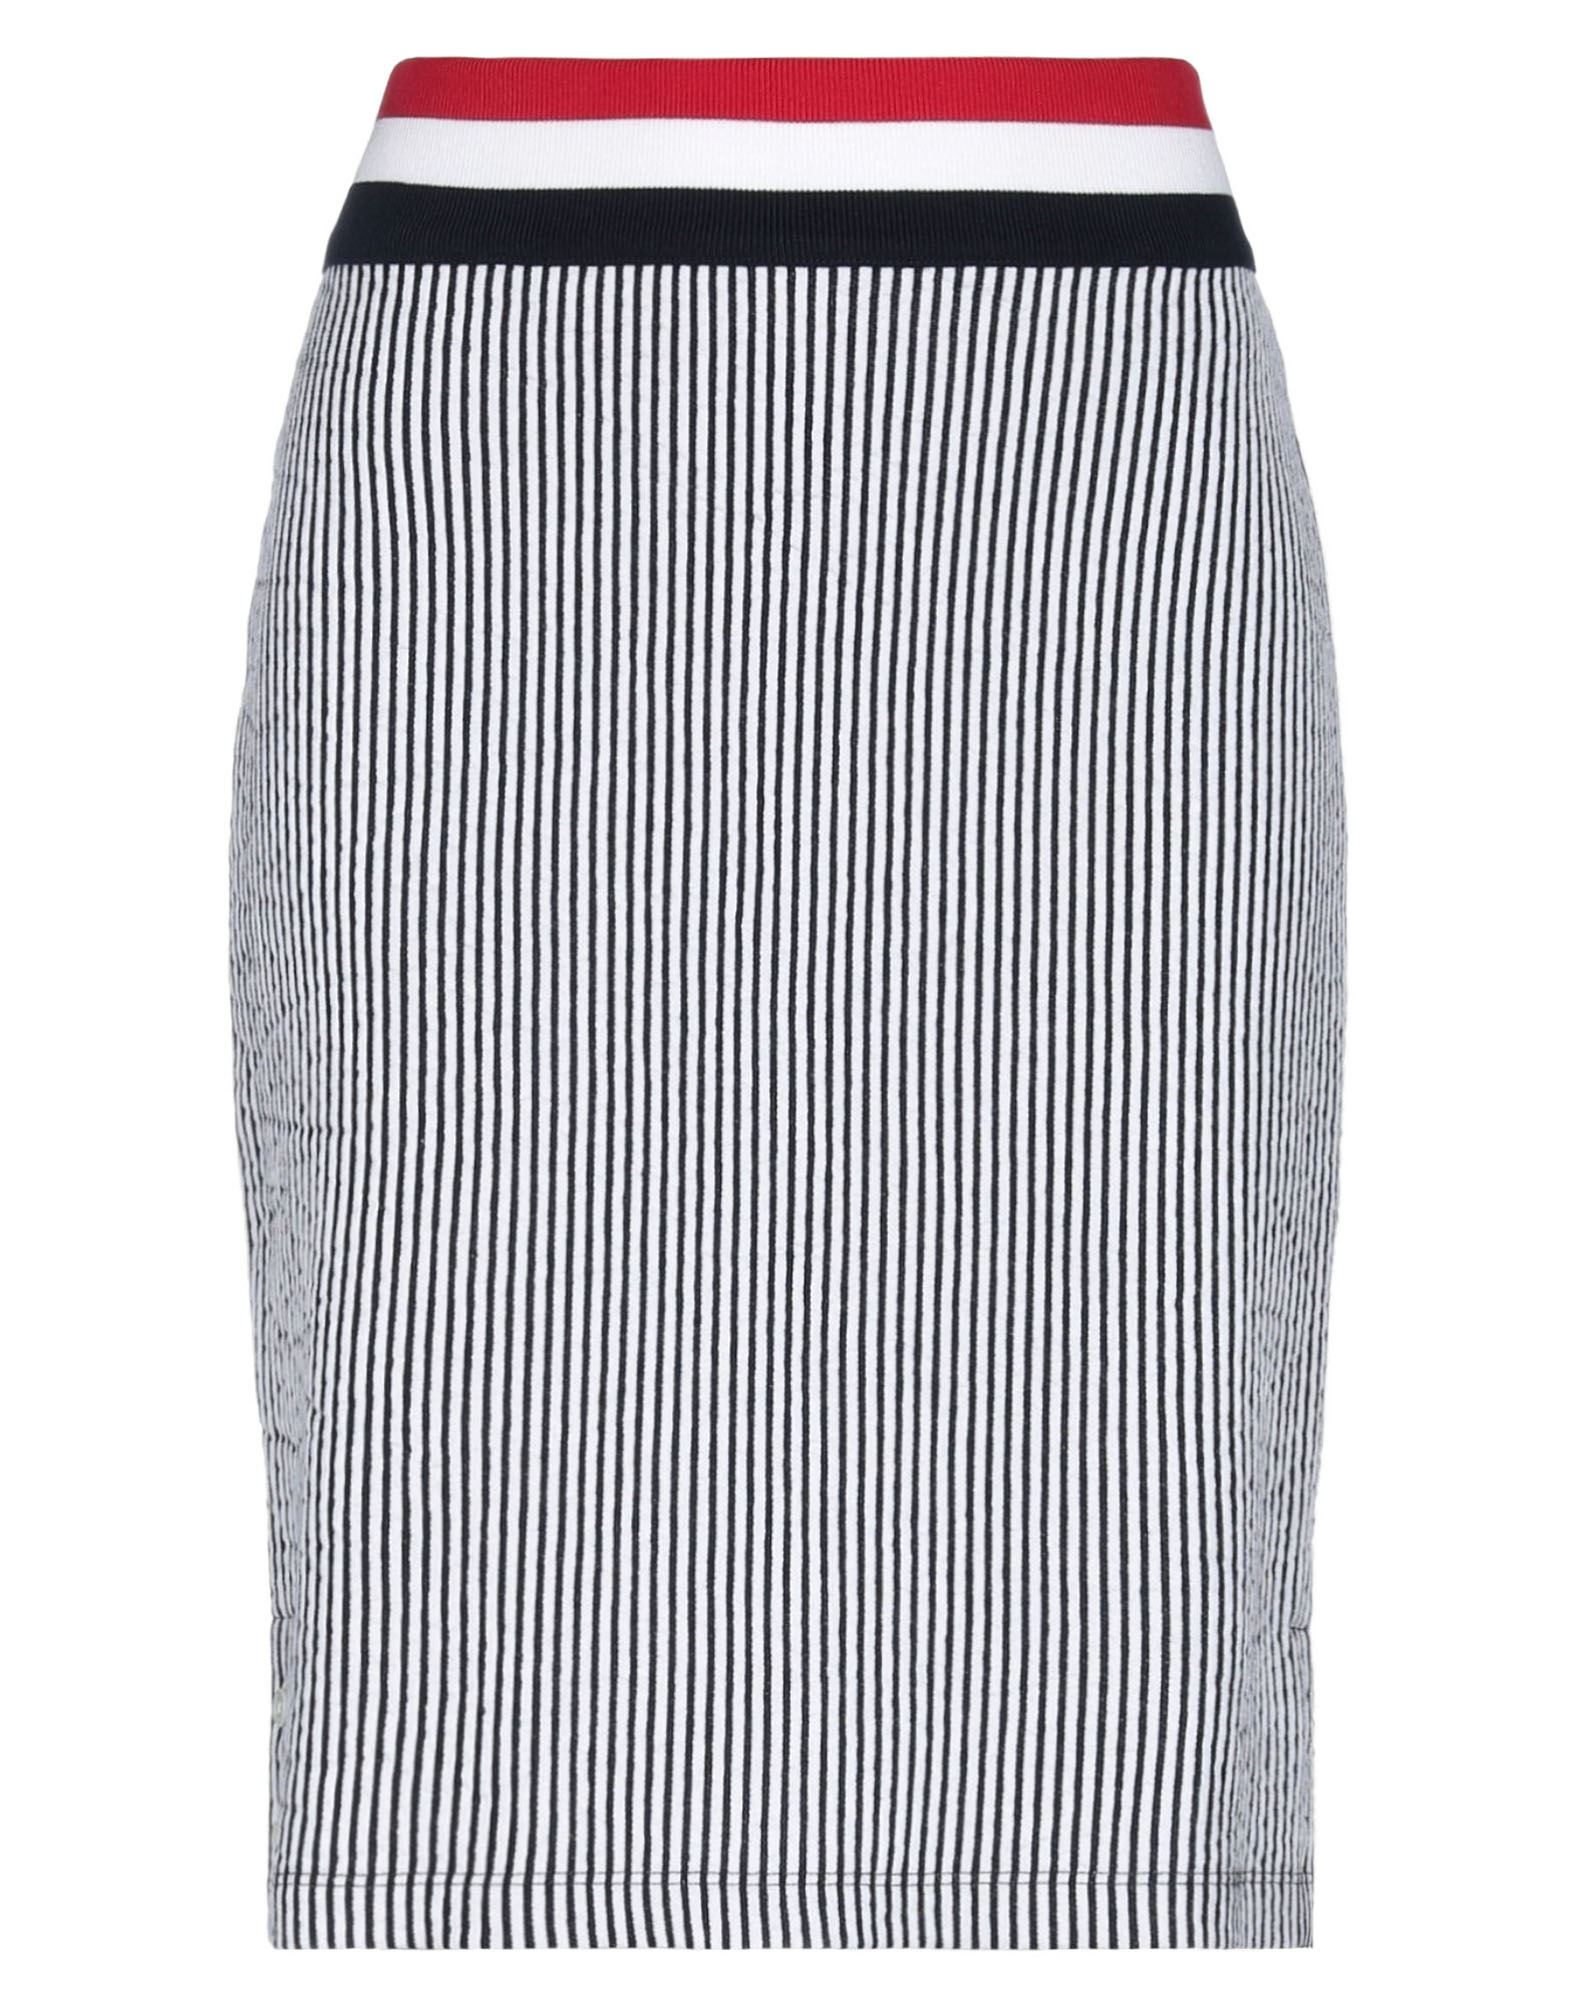 THOM BROWNE Knee length skirts. jersey, no appliqués, stripes, mid rise, no pockets, front closure, elasticized, unlined, buttoned cuffs. 100% Cotton, Elastane